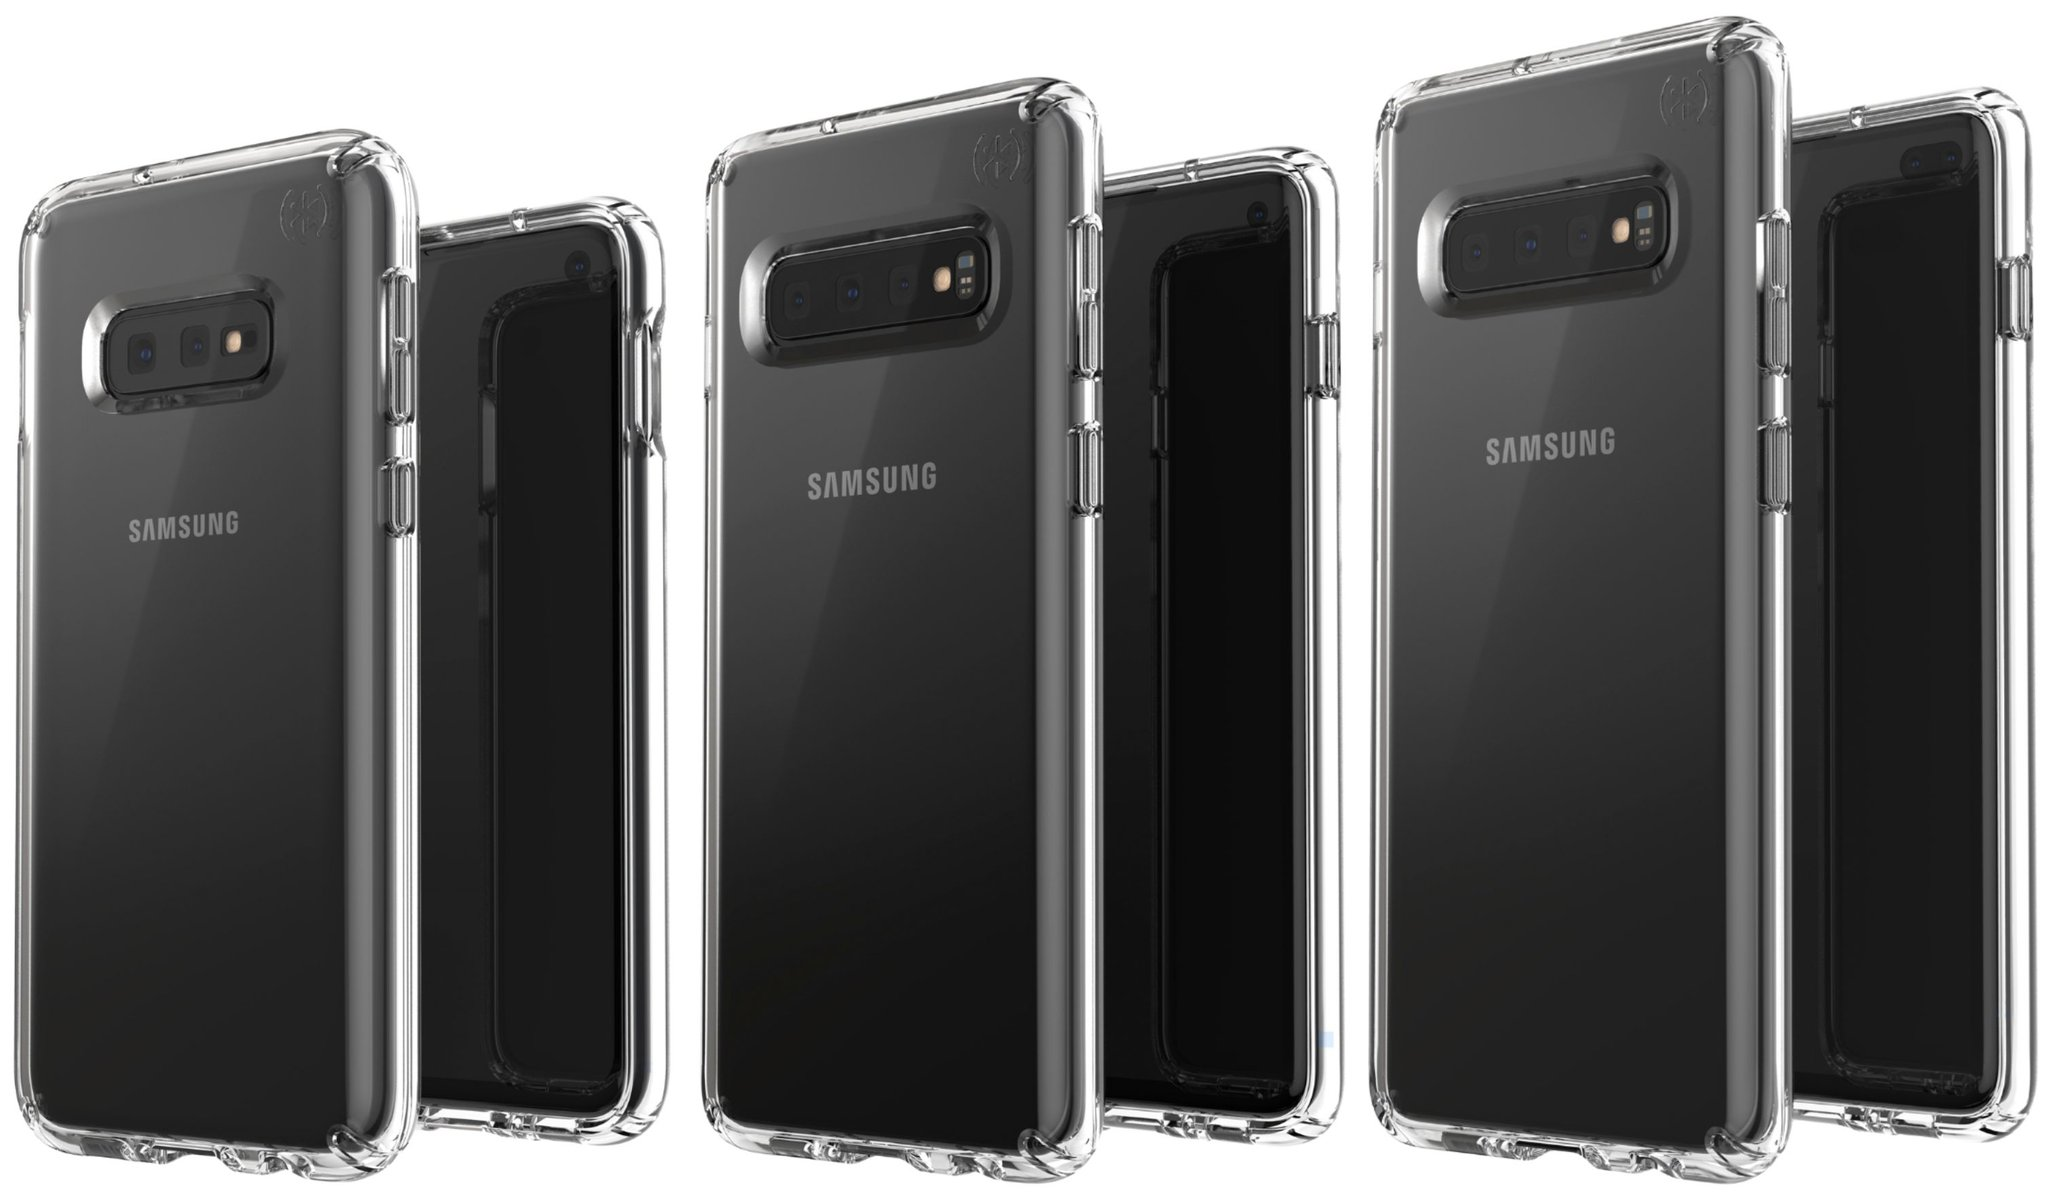 Samsung Galaxy S10 leaks: Image of the S10E, S10 and S10 ...